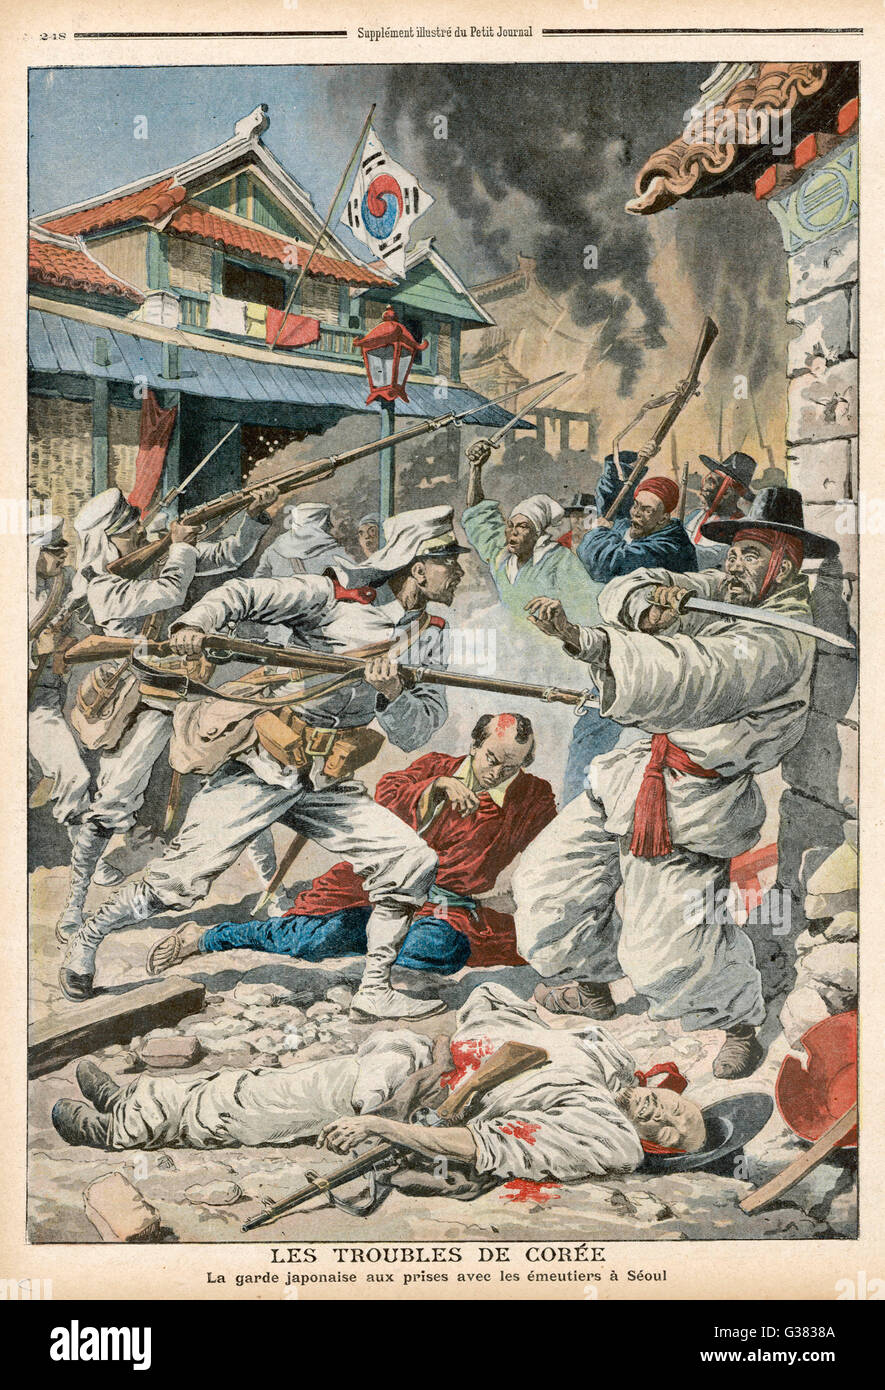 Seoul : rioters in conflict  with the Japanese forces of  occupation        Date: 1907 - Stock Image